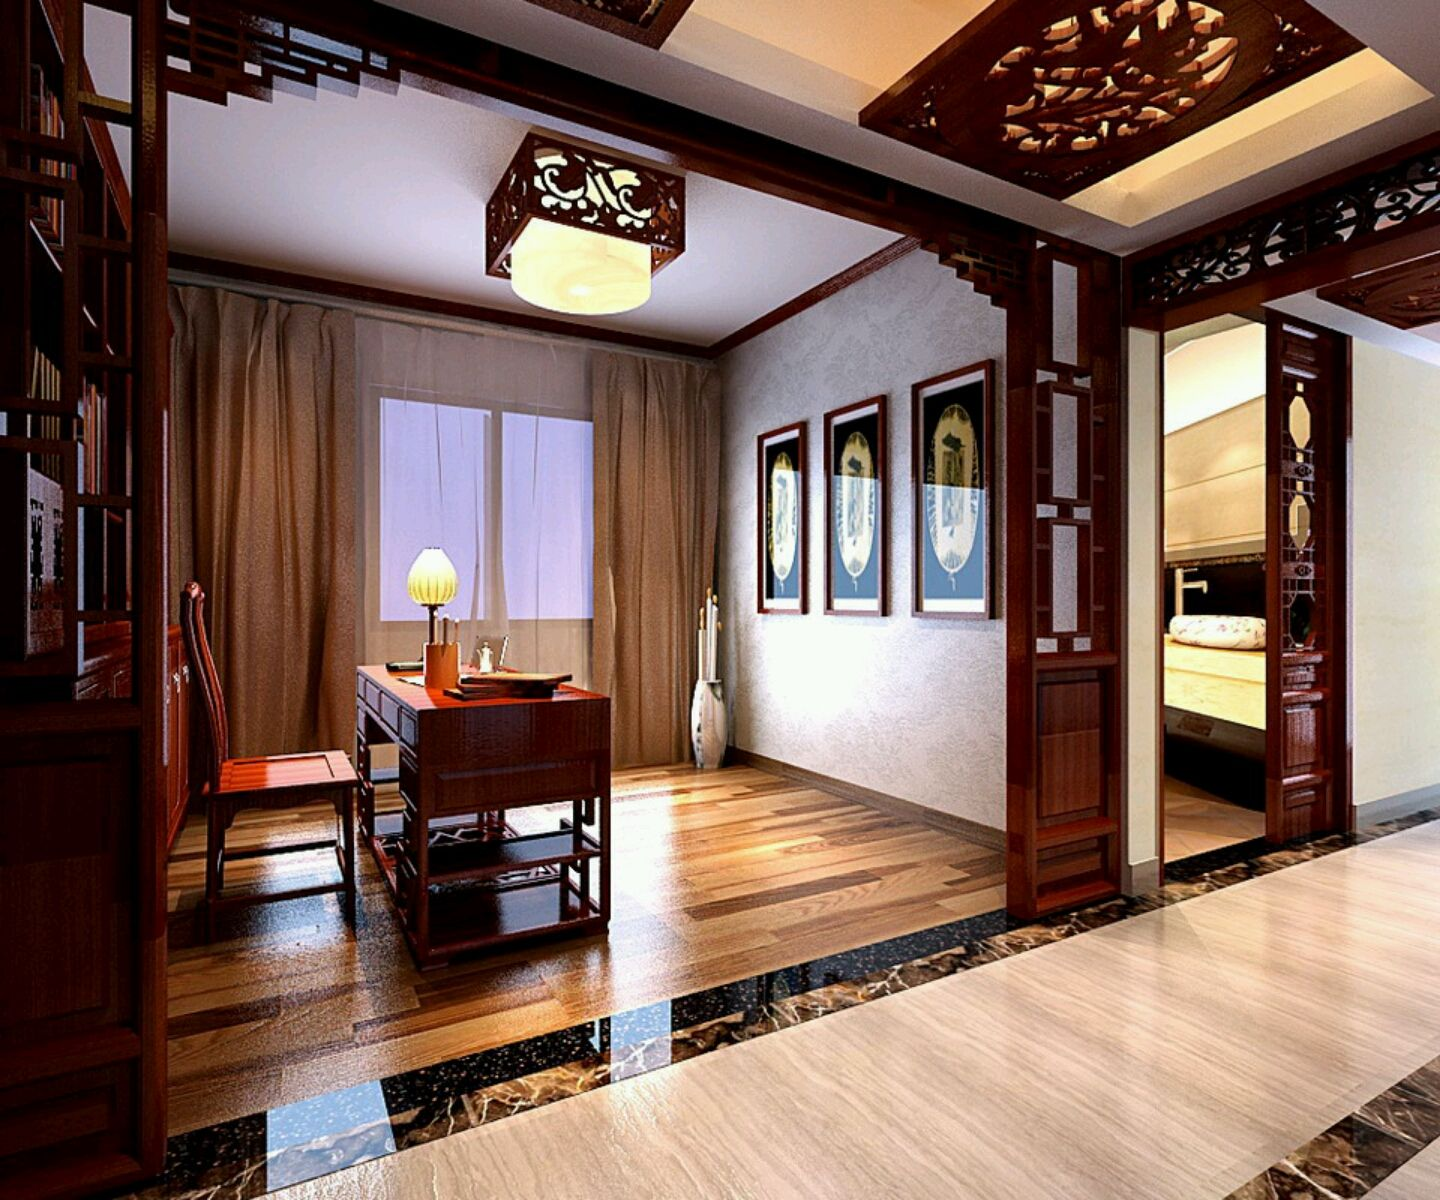 Www Lsl Com The World S 1 Most Visited Video Chat Community Modern Home Interior Design Modern Interior Design House Design